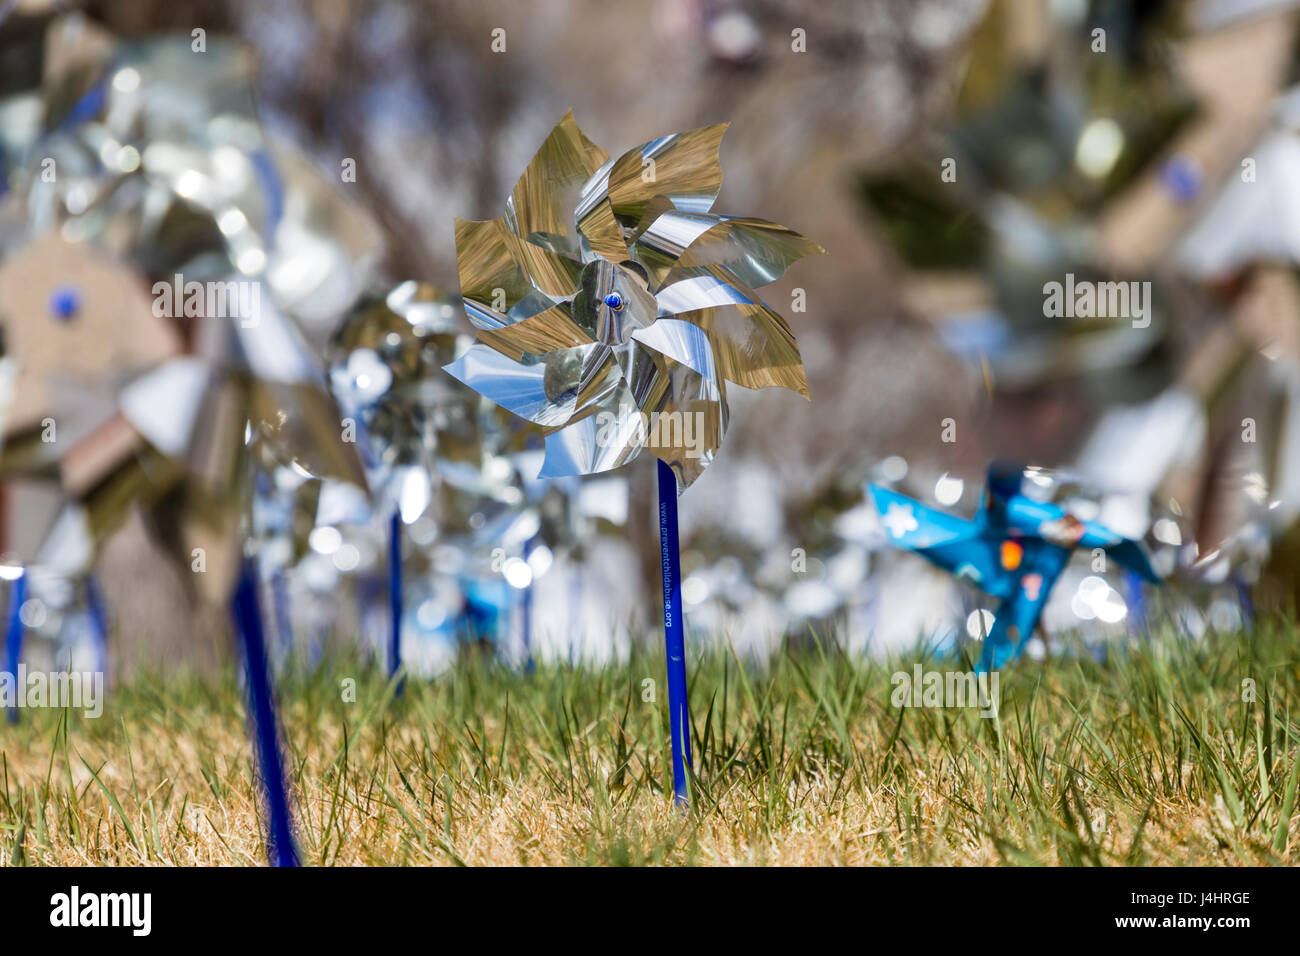 Pinwheels for Prevention, symbols for Prevention Against Child Abuse month, central Colorado, USA - Stock Image